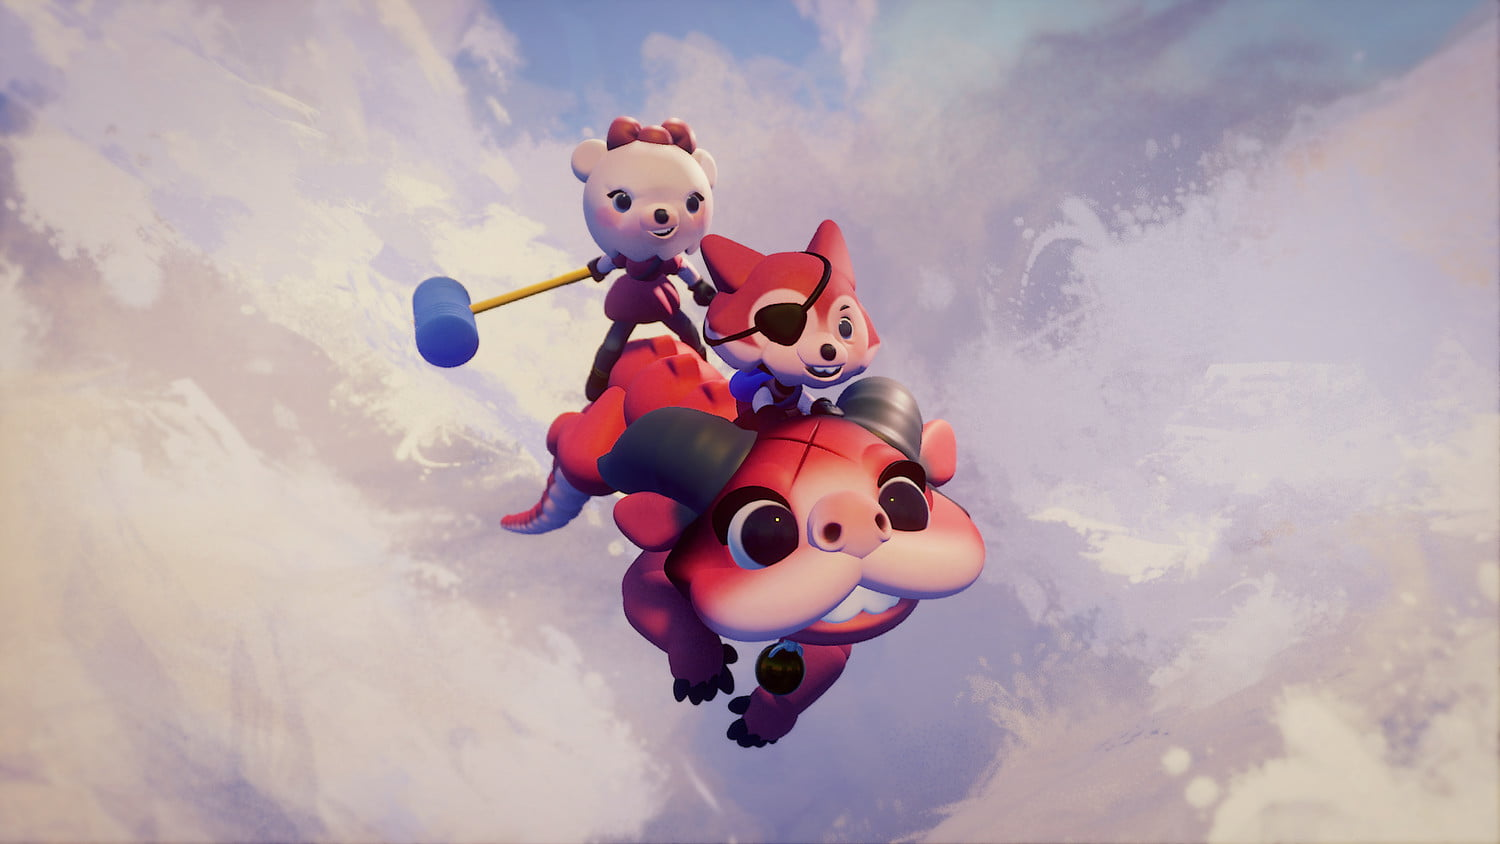 Dreams PS4 Early Access Unlocked: Everything you need to know